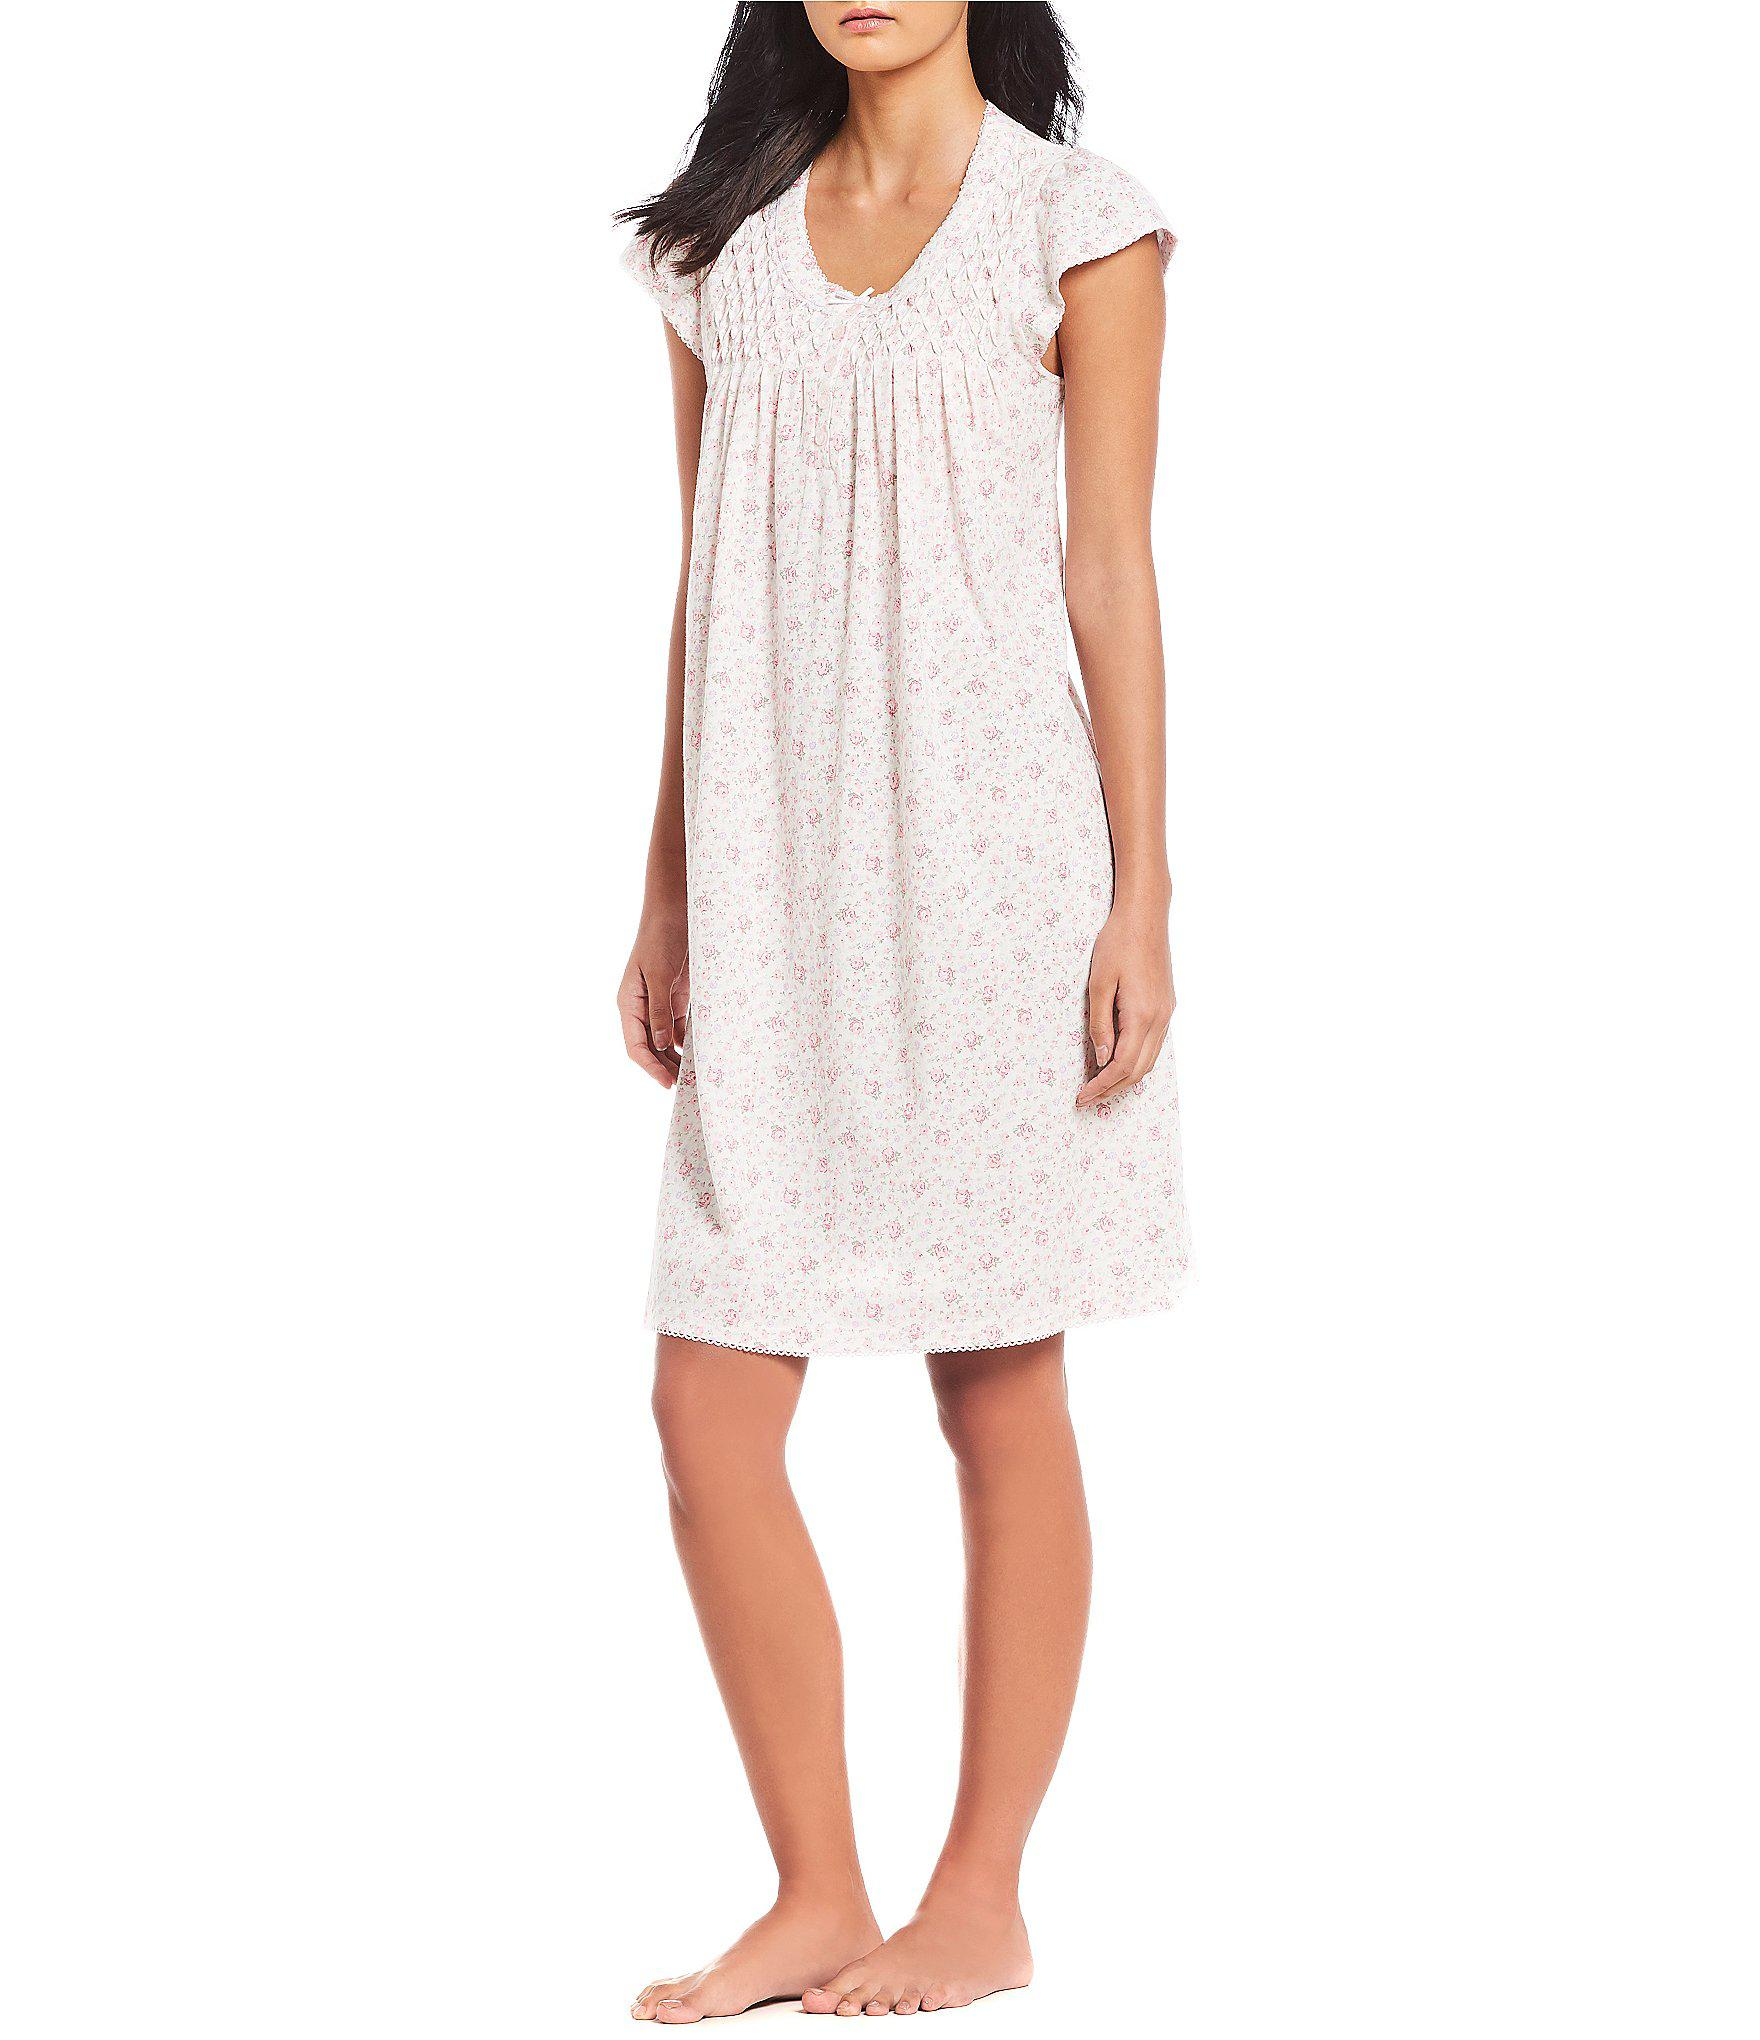 83e6c6c26f Lyst - Miss Elaine Silky Knit Floral Print Flutter-sleeve Nightgown ...